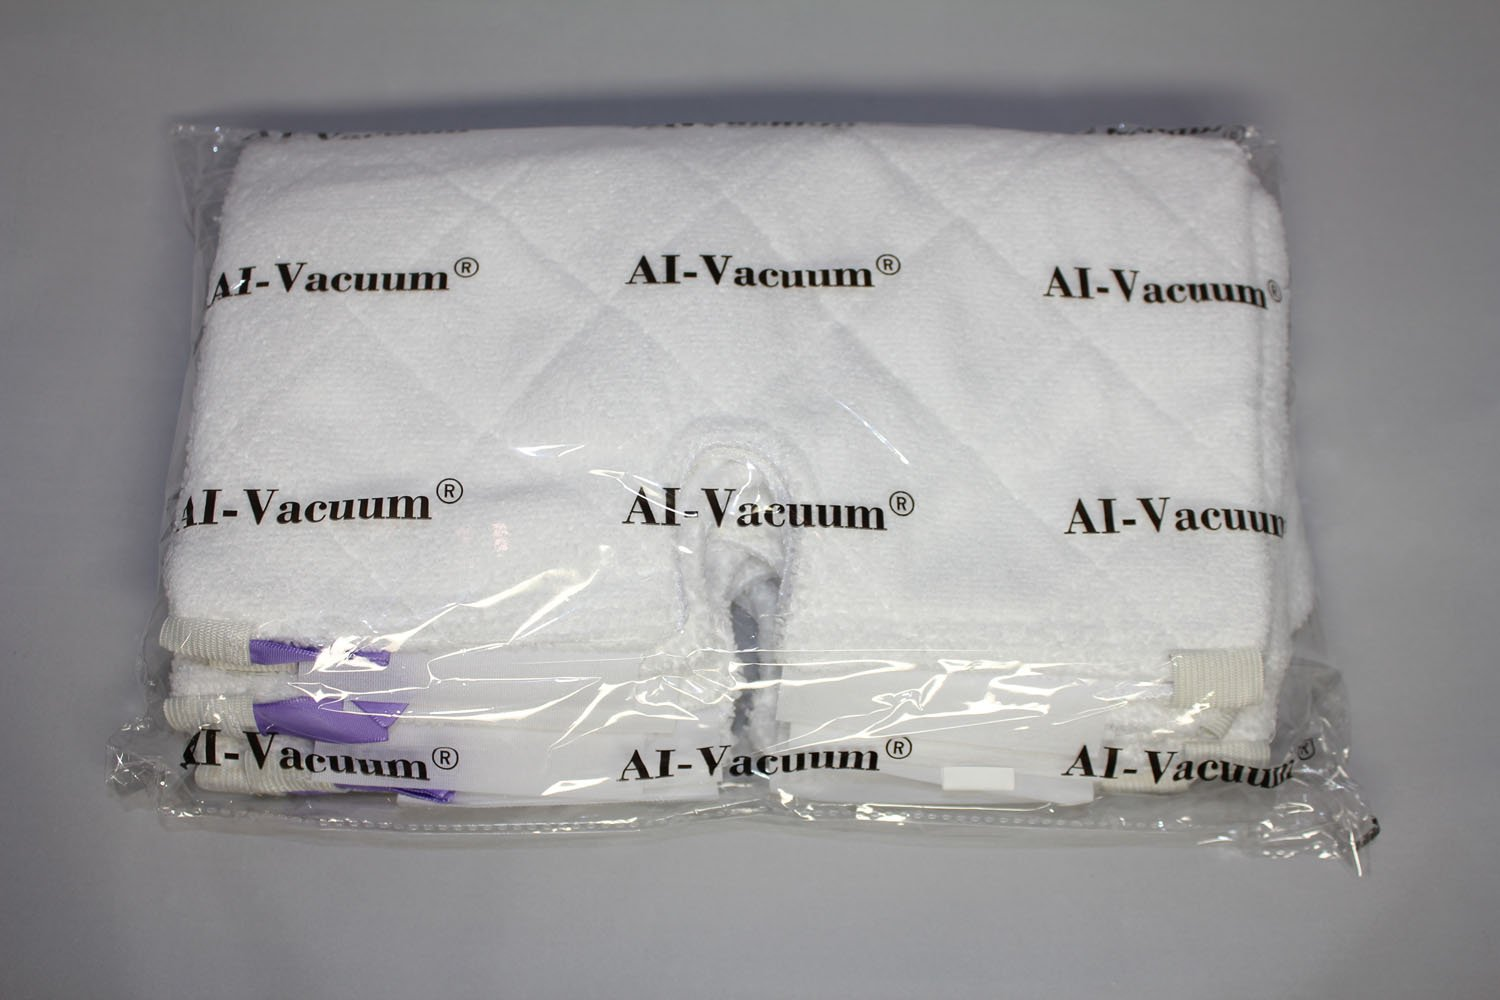 6 Pocket Steam Mop Pads for Shark Euro Pro S3501 S3601 S3901, by AI-Vacuum